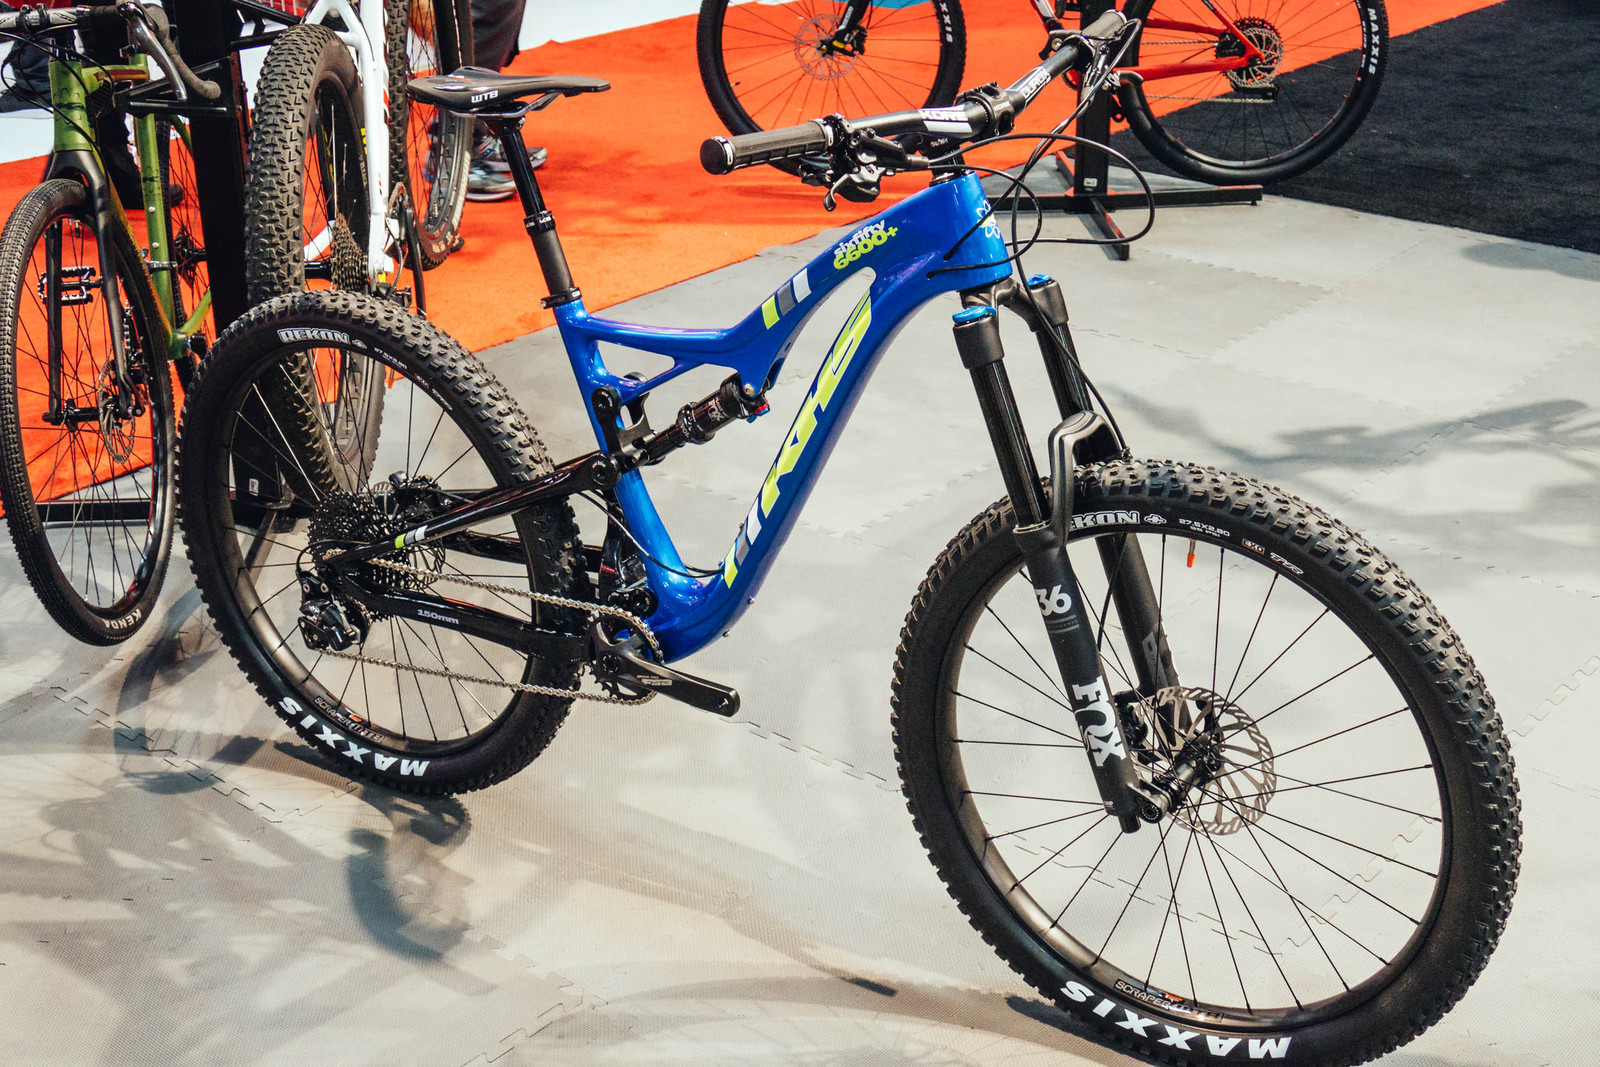 KHS Sixfifty 6600+ Carbon Mountain Bike